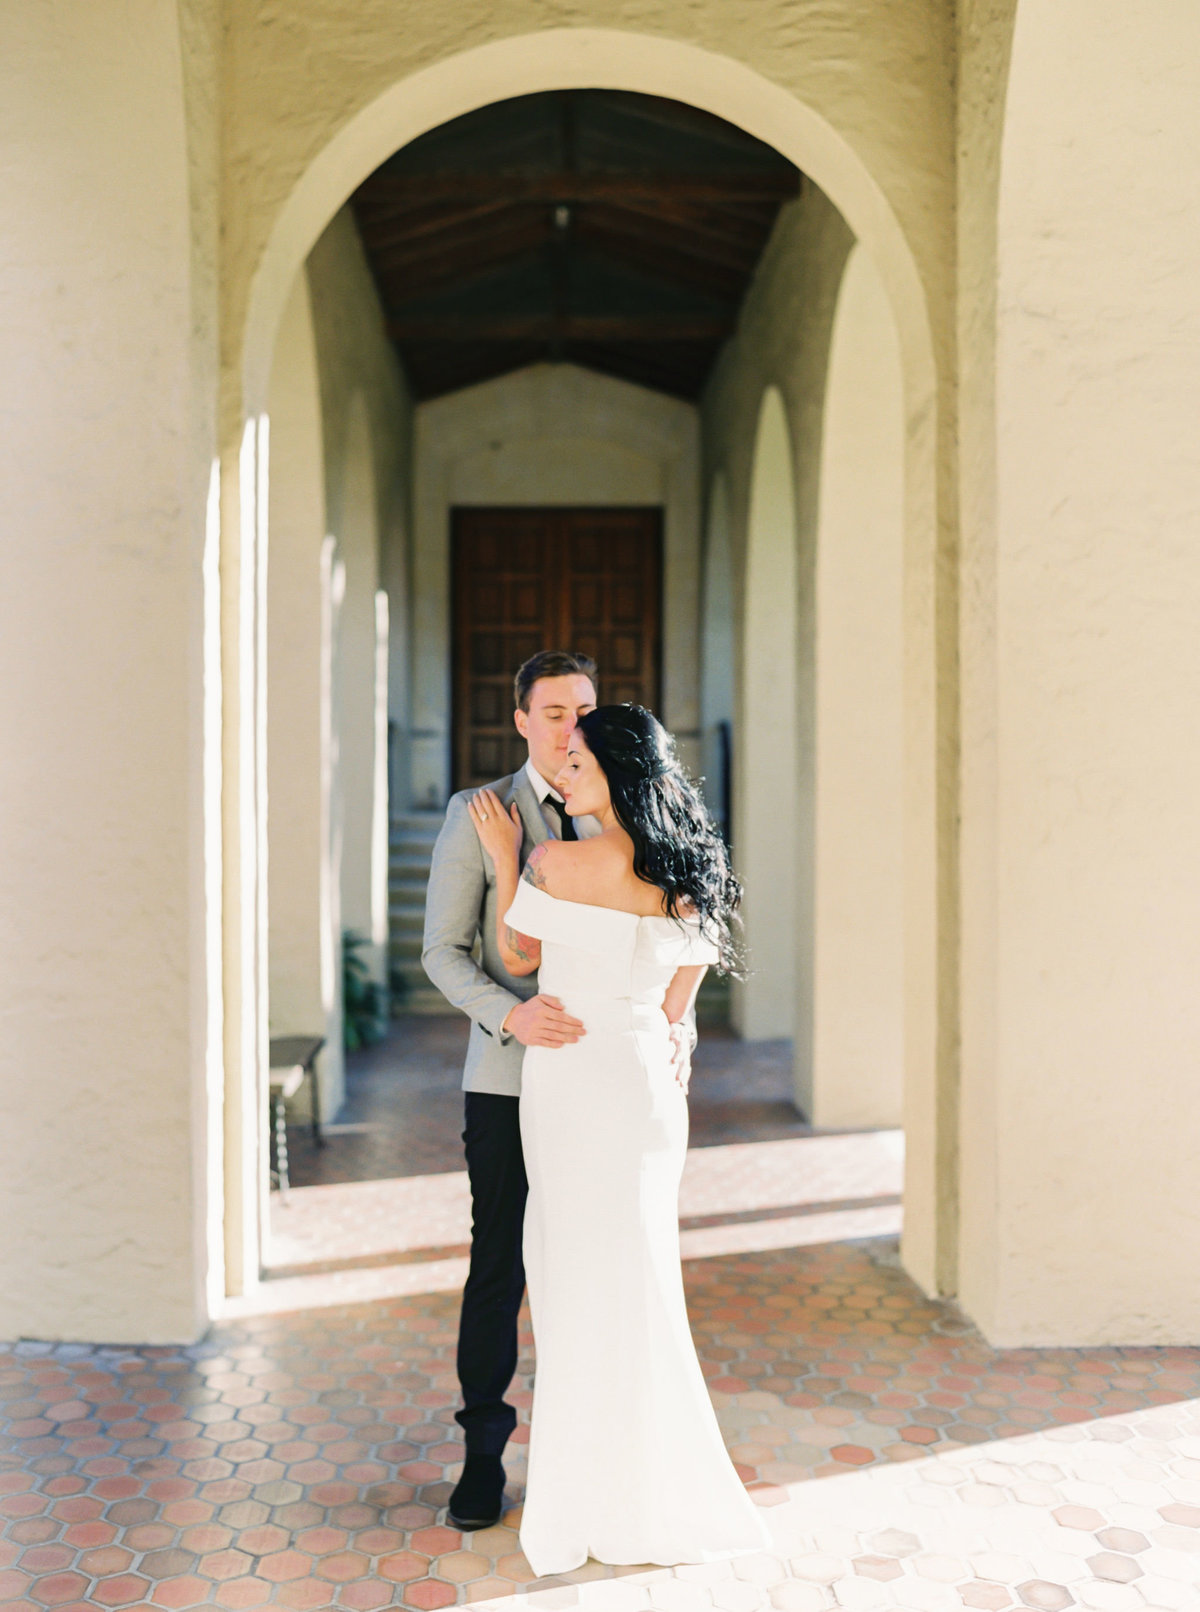 TiffaneyChildsPhotography-FloridaWeddingPhotographer-Kaity+Joe-RollinsCollegeAnniversarySession-18